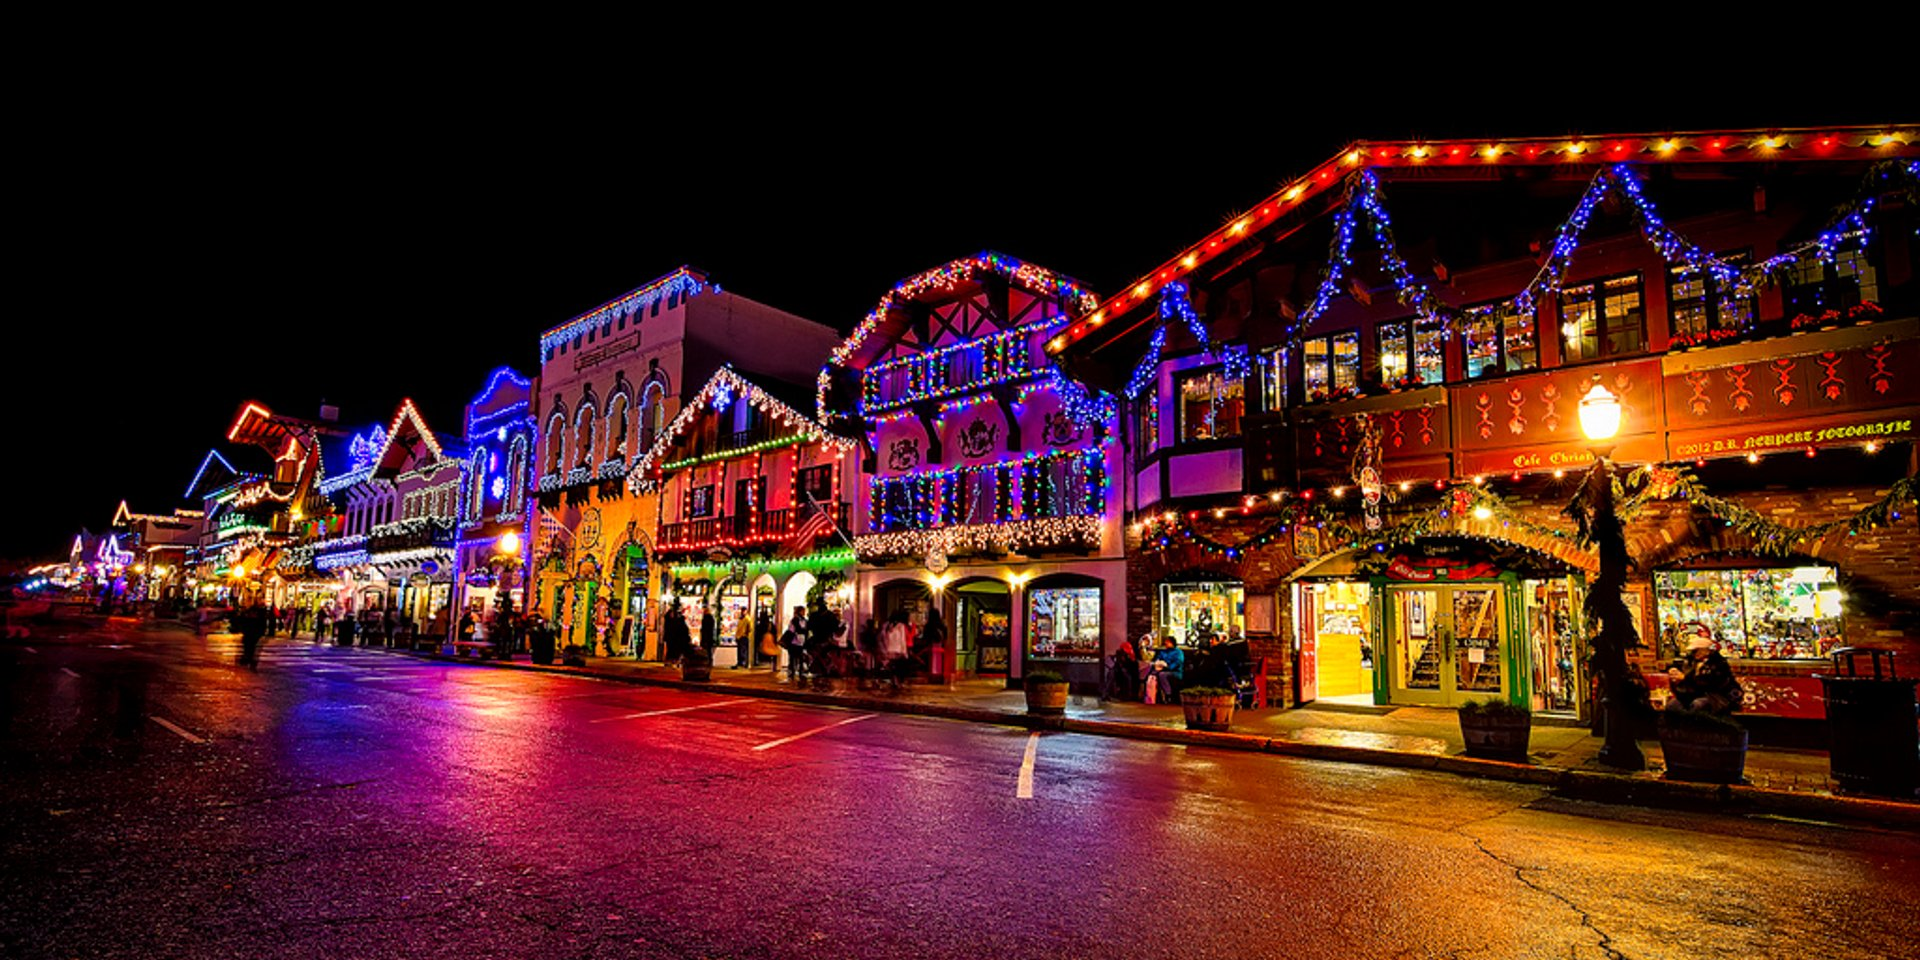 Best time to see Leavenworth Christmas Lighting Festival 2019